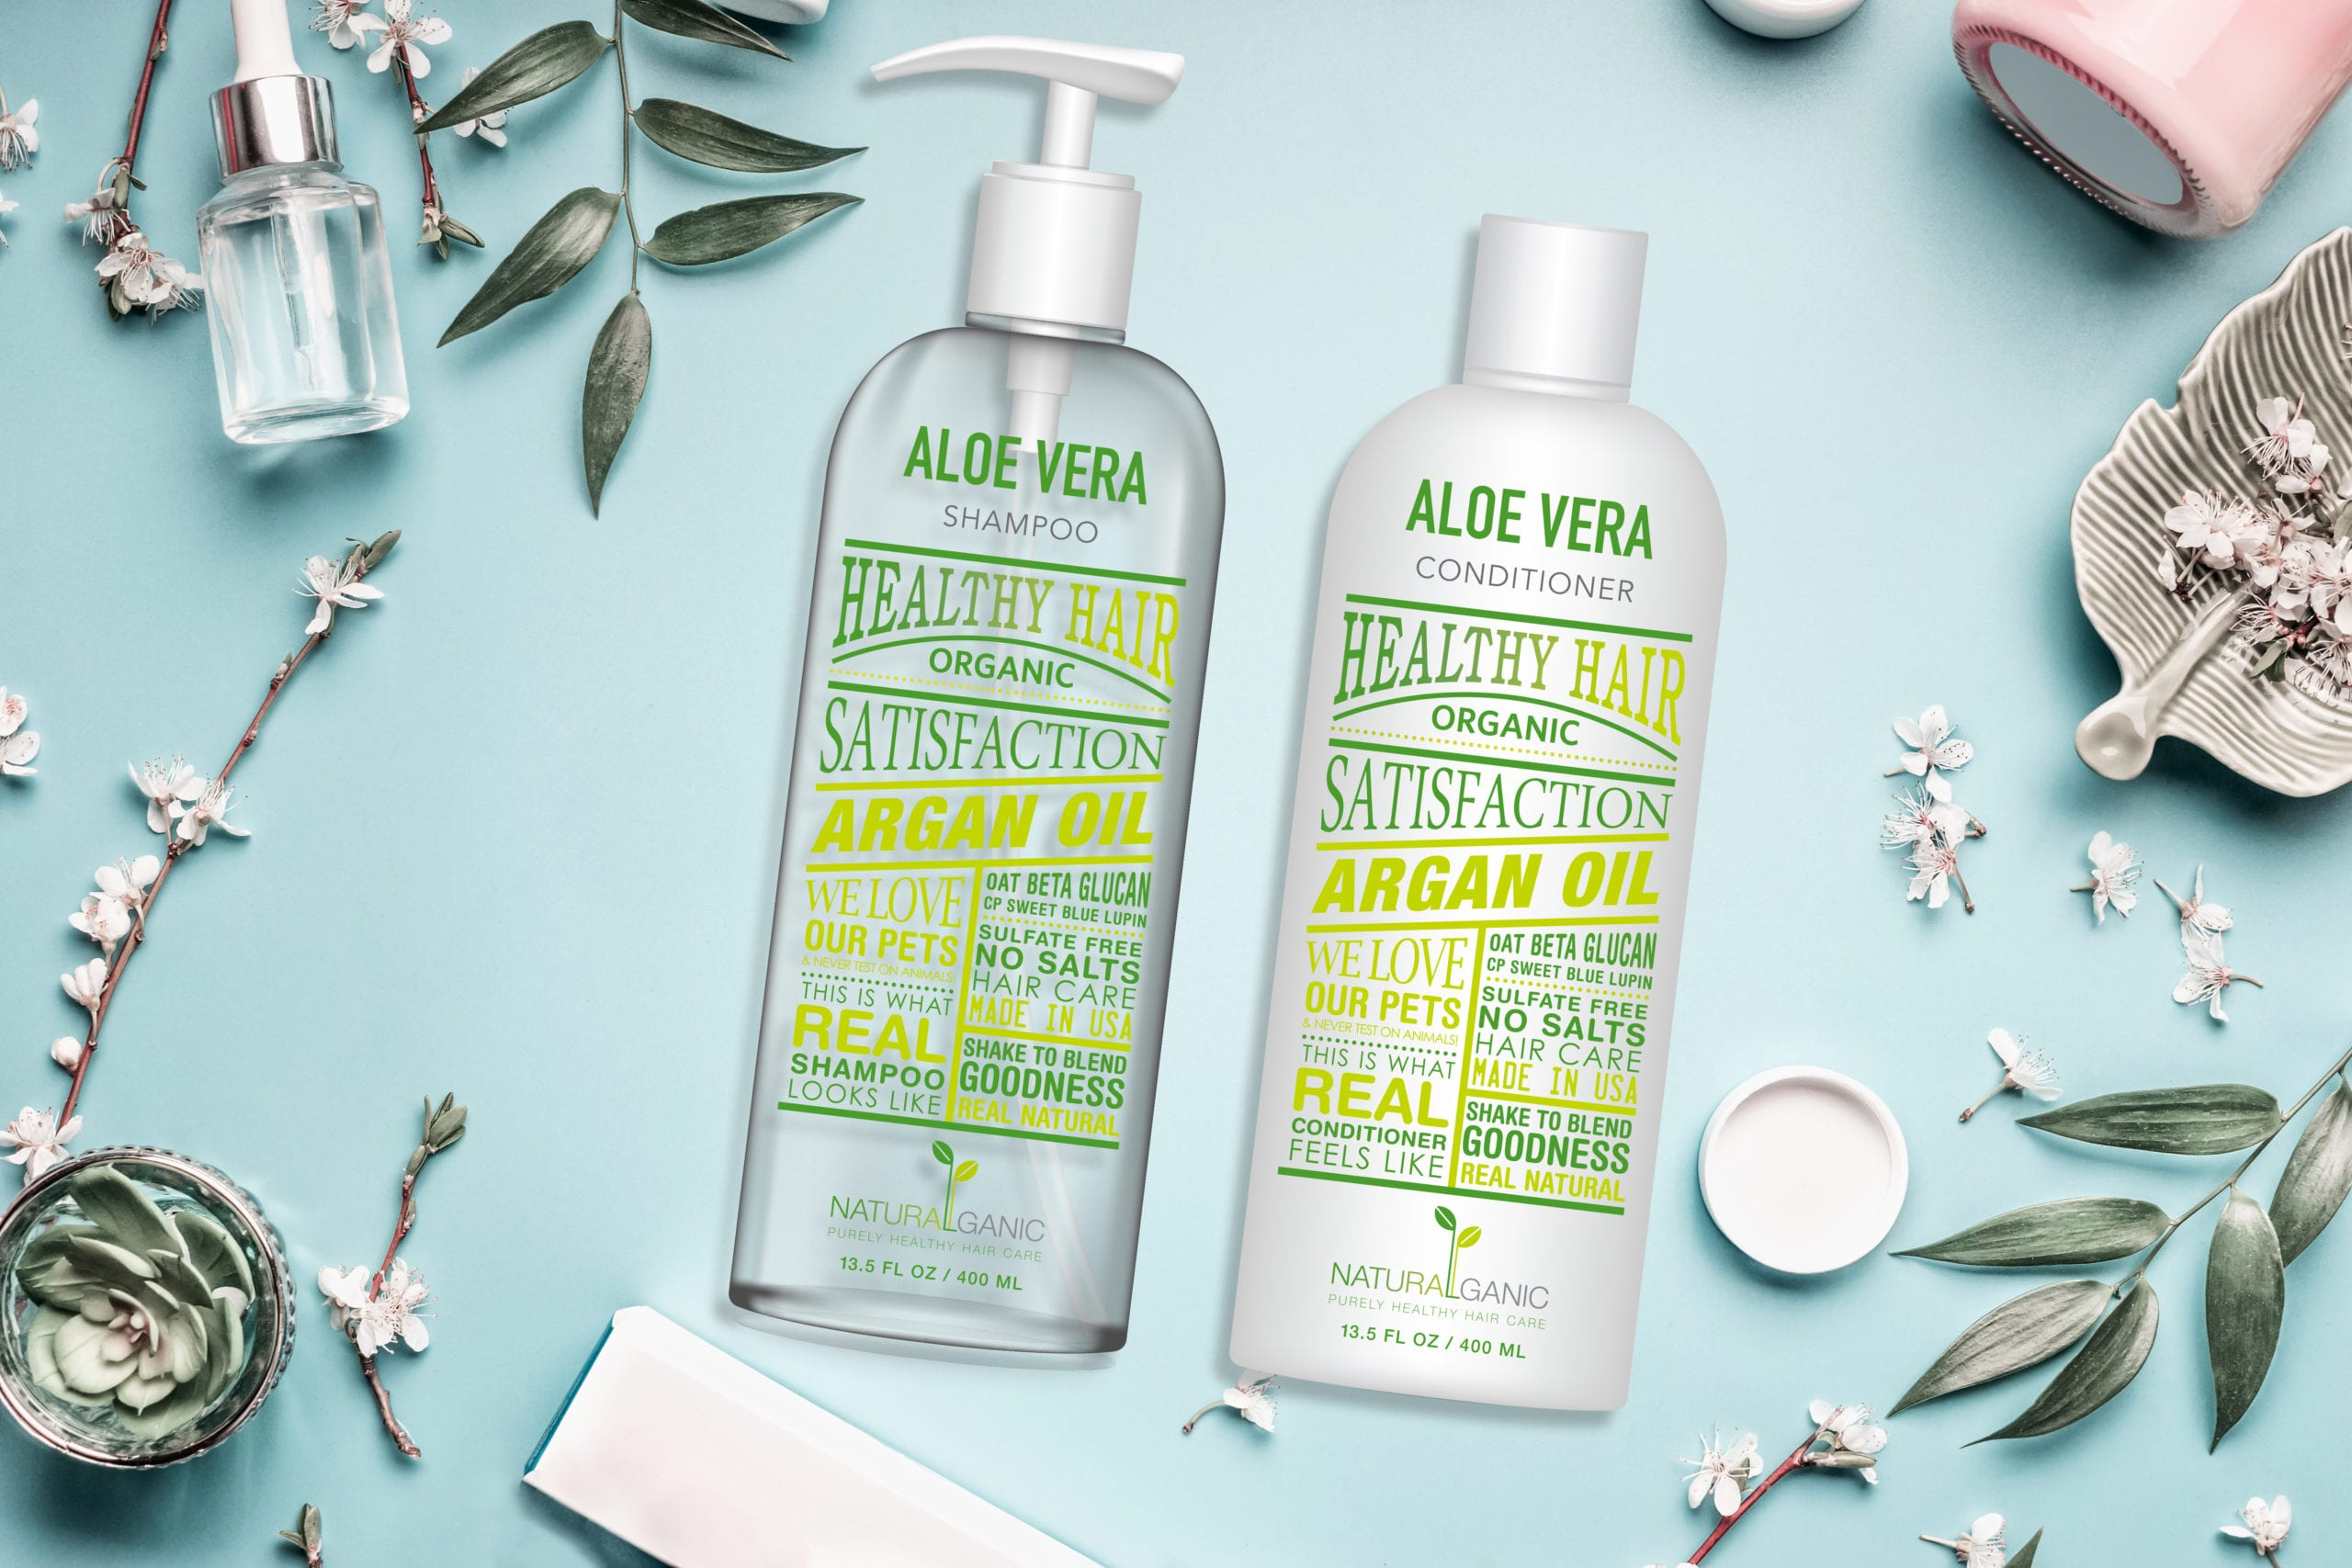 Naturalganic bottles of Aloe Vera, packaging designed by Canyon Creative